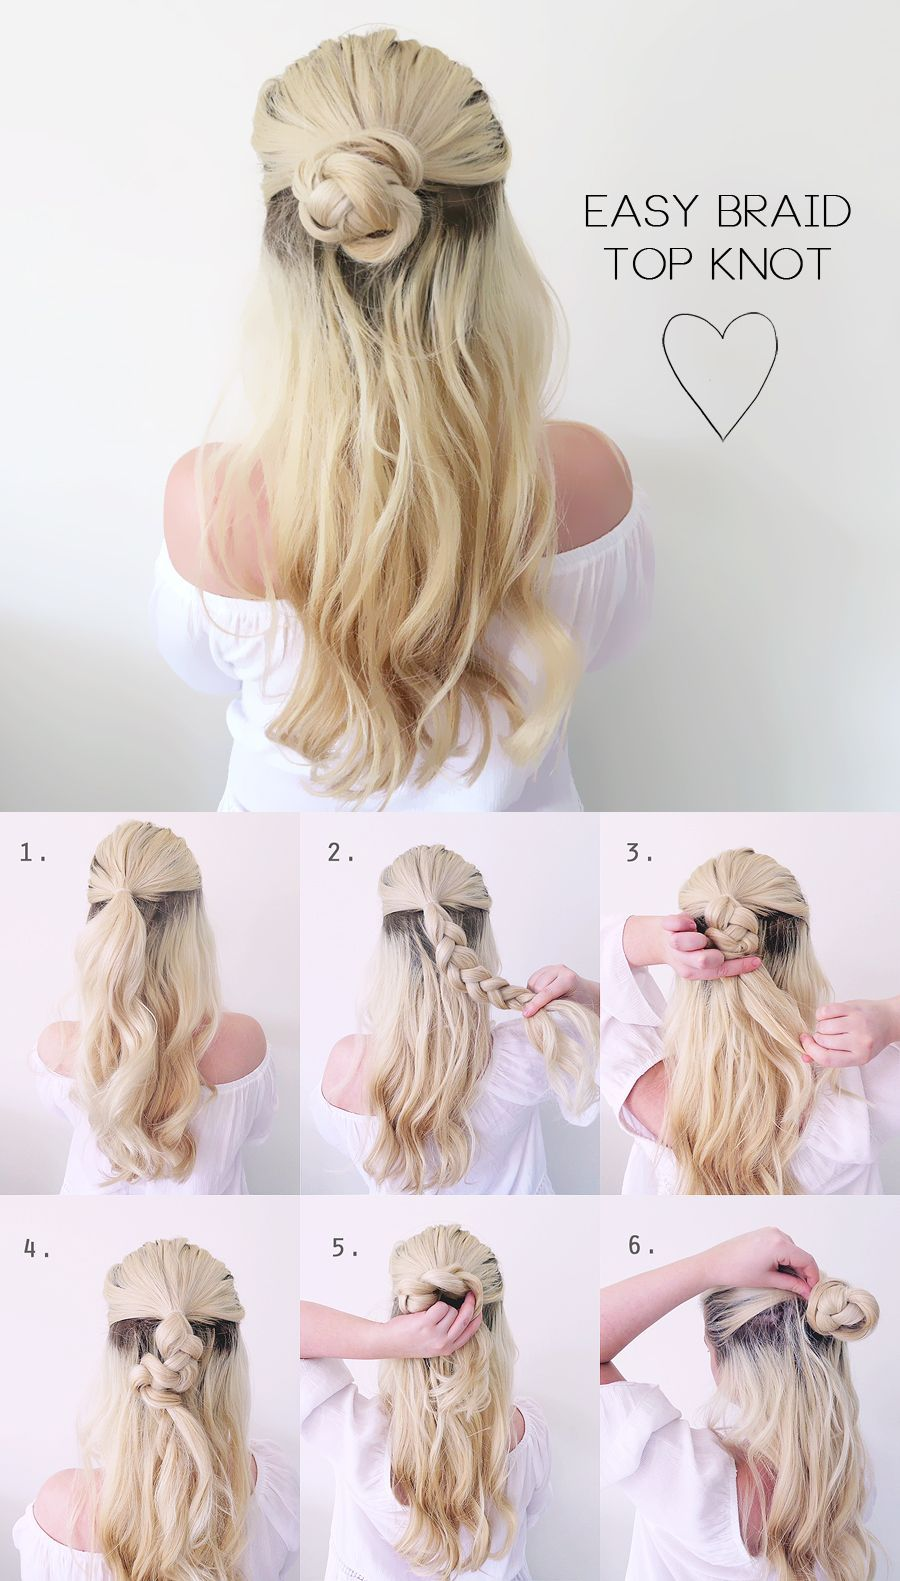 Hair tutorial very easy summer braided top knot grace and braver